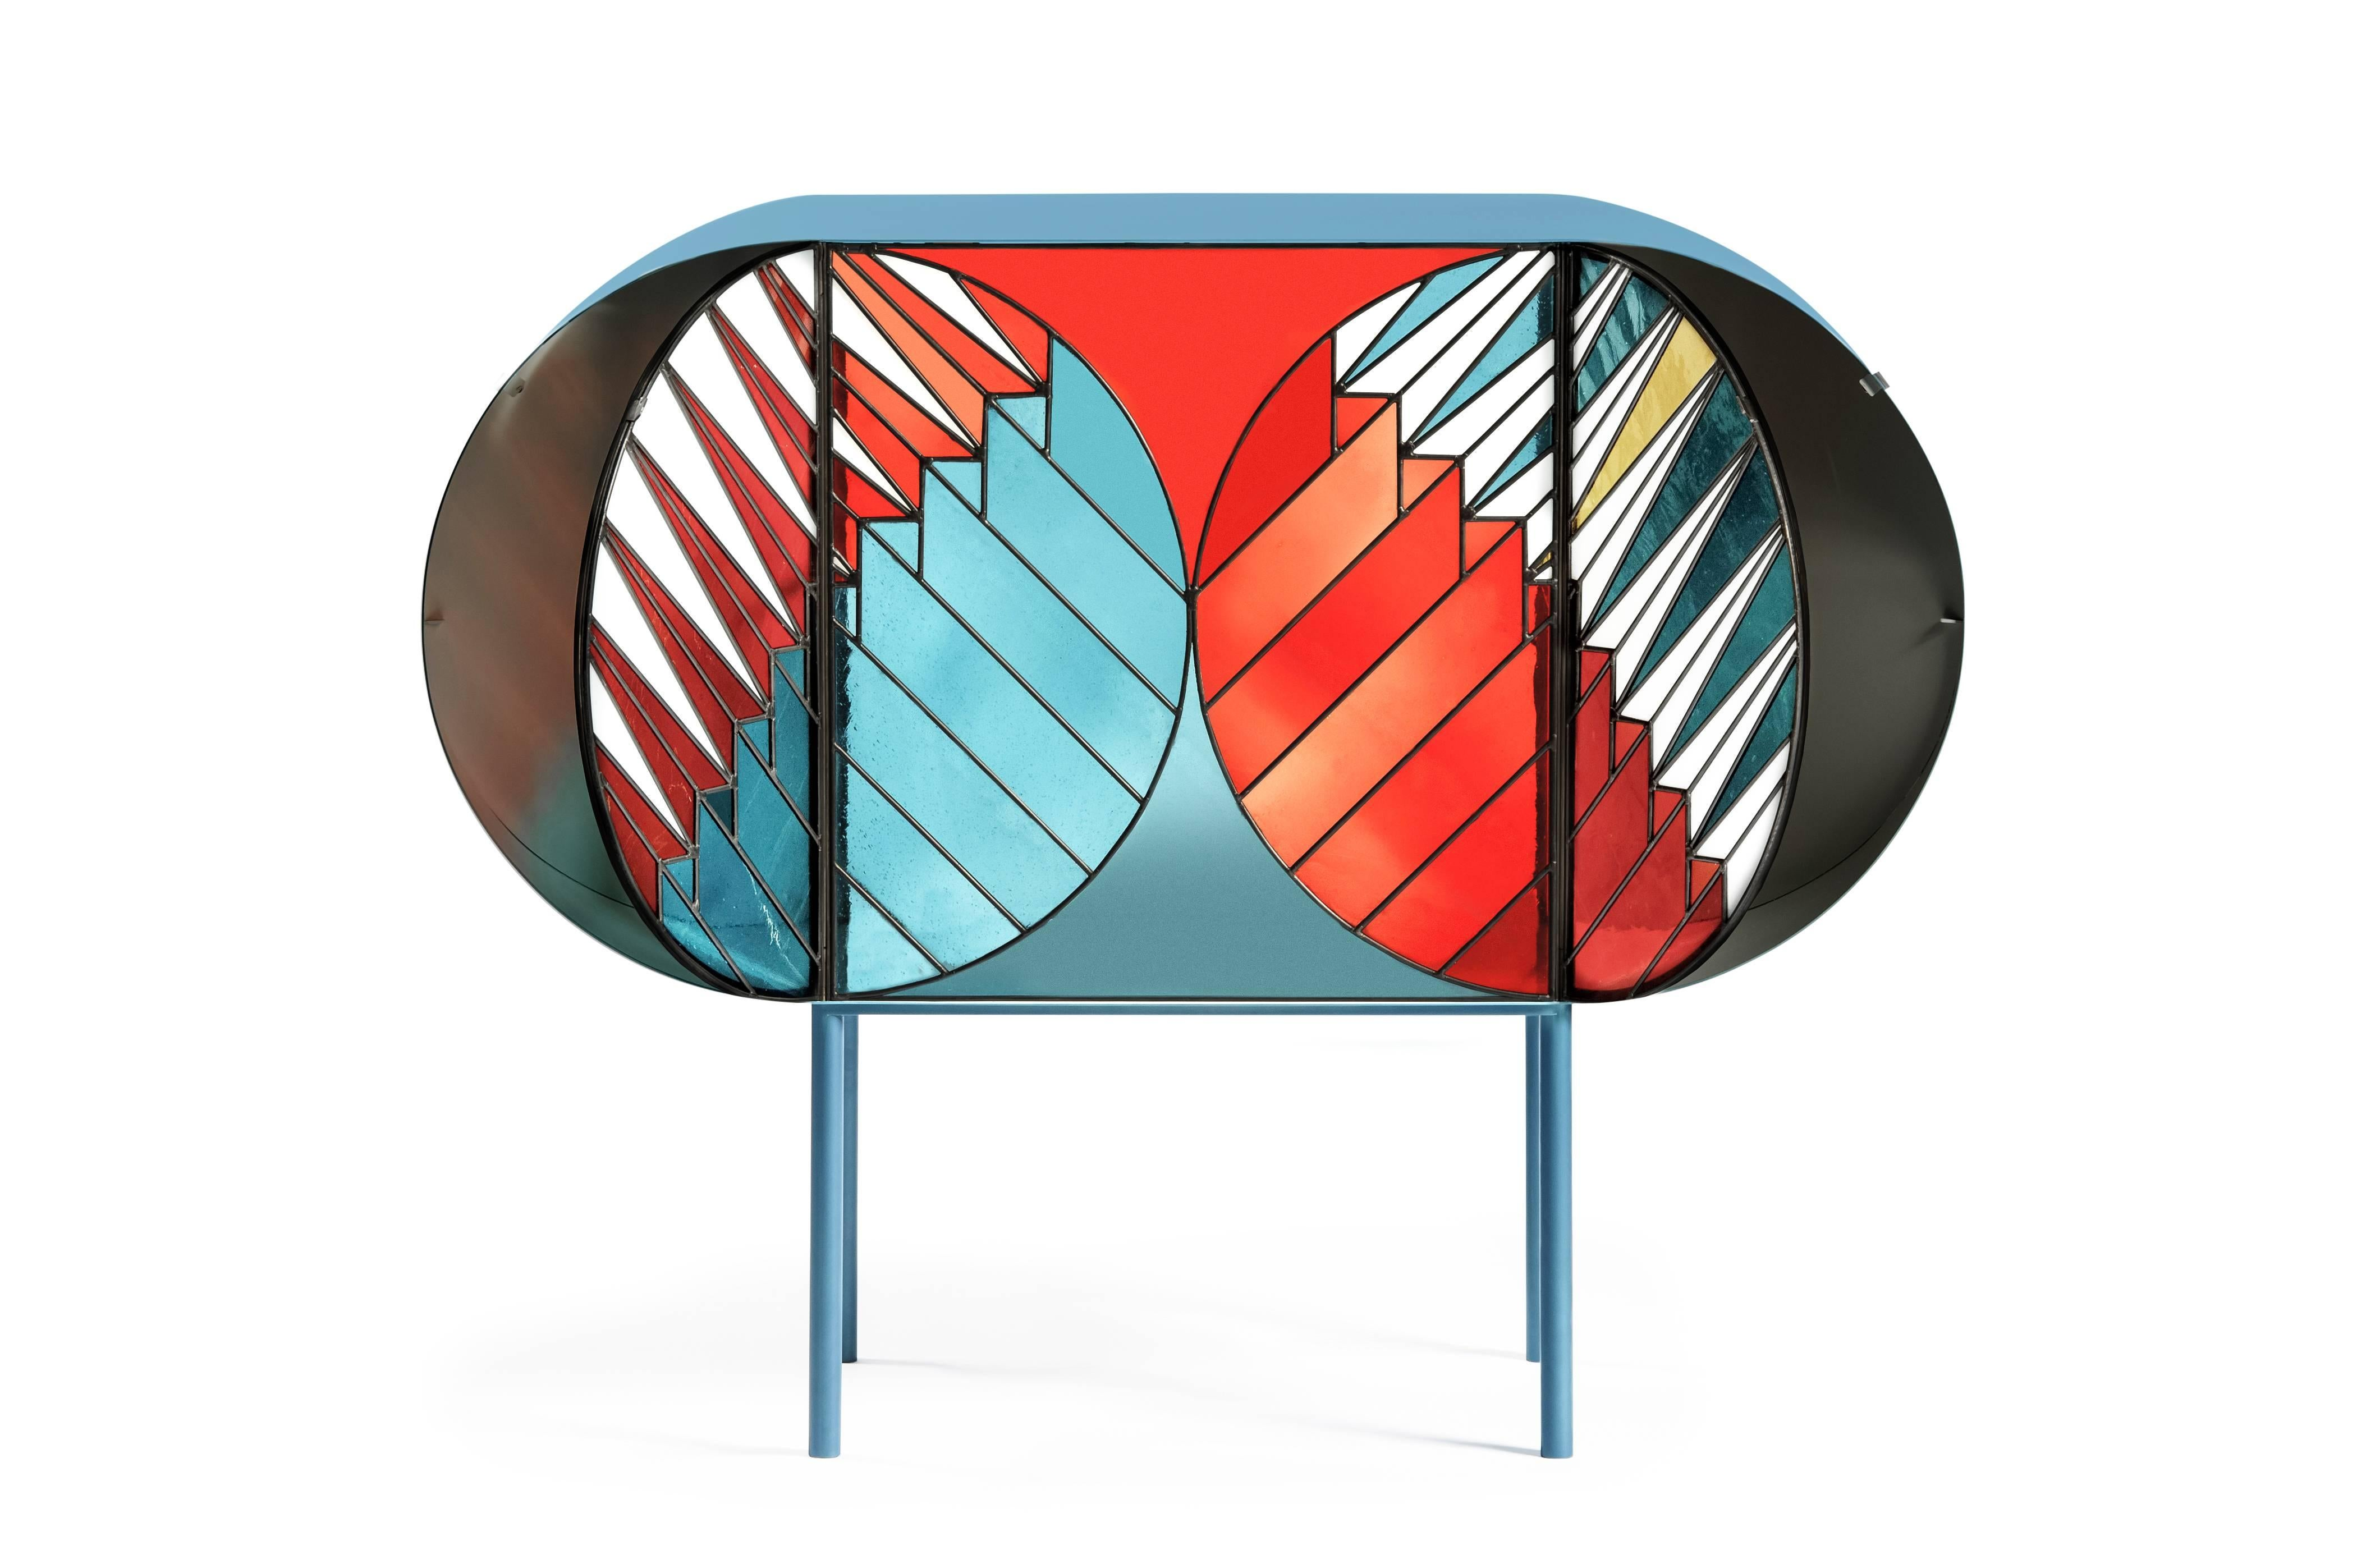 Credenza Sideboard In Stained Glass Design Patricia Urquiola And Federico